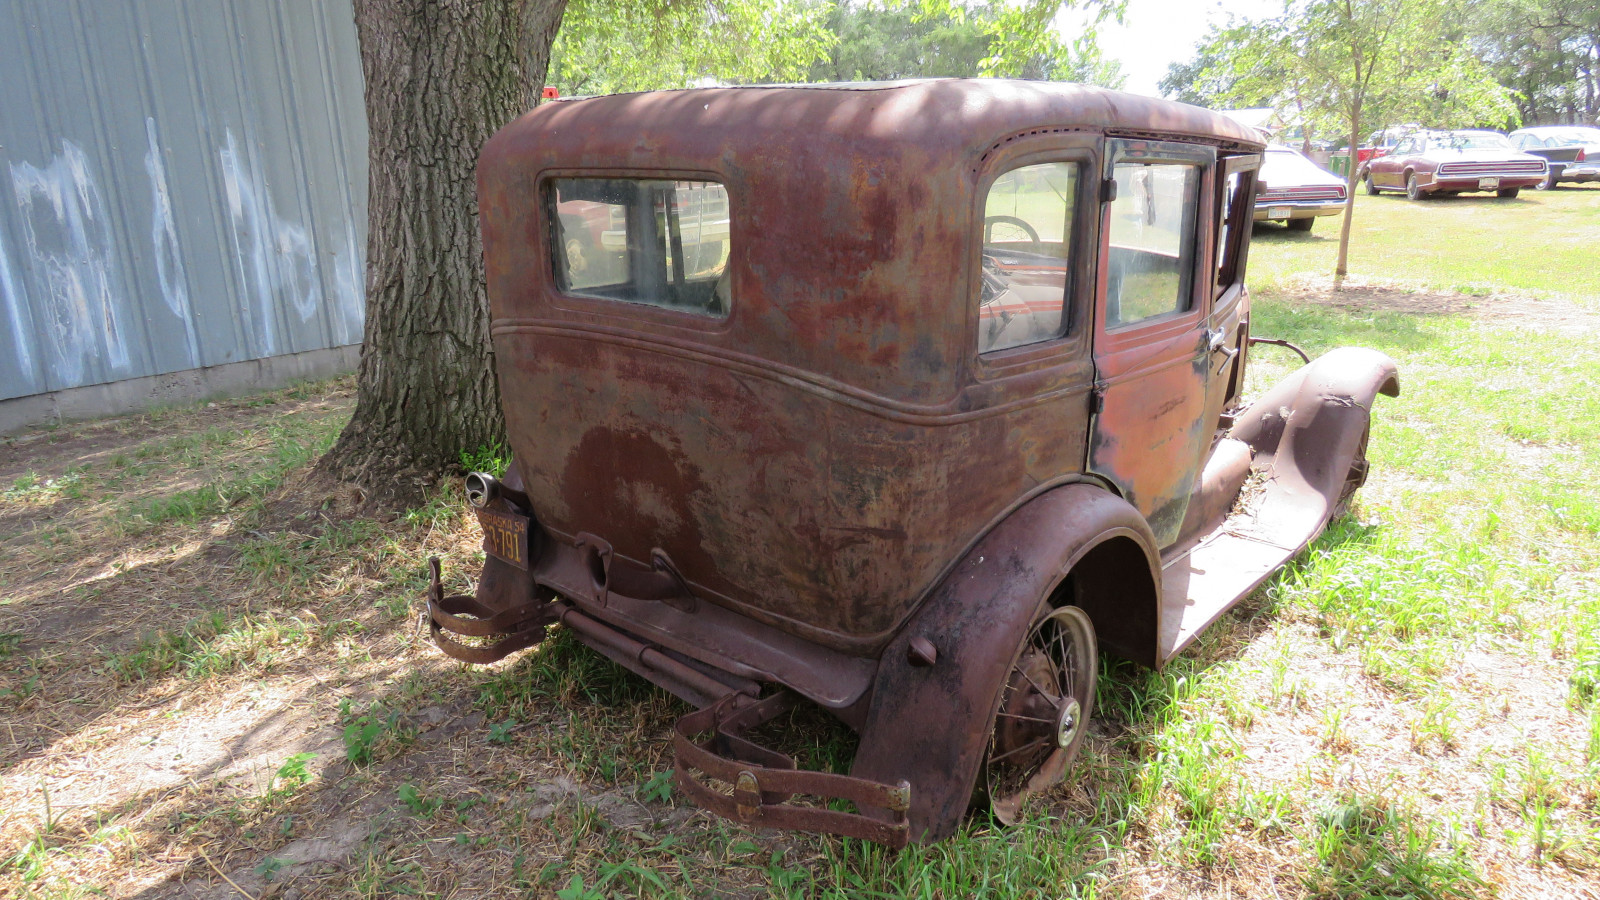 1928 Ford Model A 4dr Sedan for Rod or Restore - Image 4